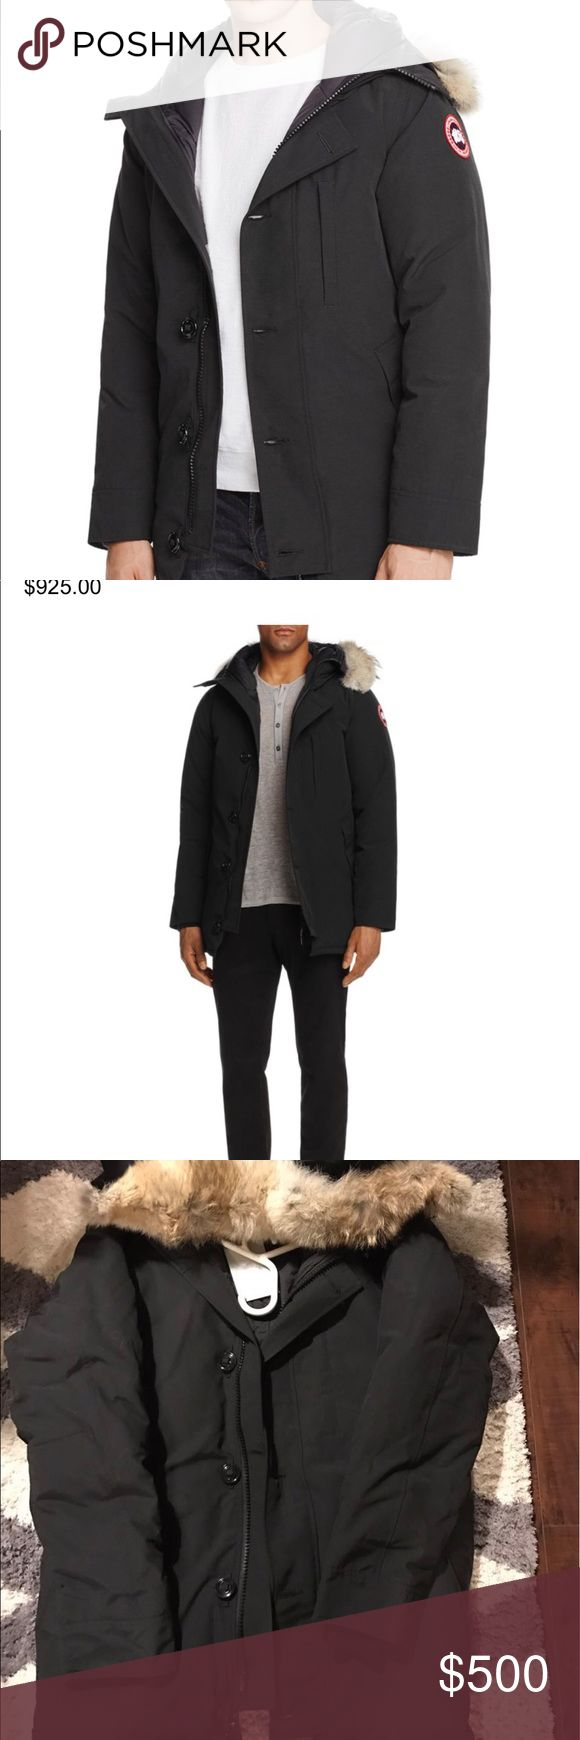 Canada Goose Brand New Coat Get this from Neiman Marcus Last Call, Never worn, Brand New With Tag.  Size is XL Canada Goose Jackets & Coats Bomber & Varsity